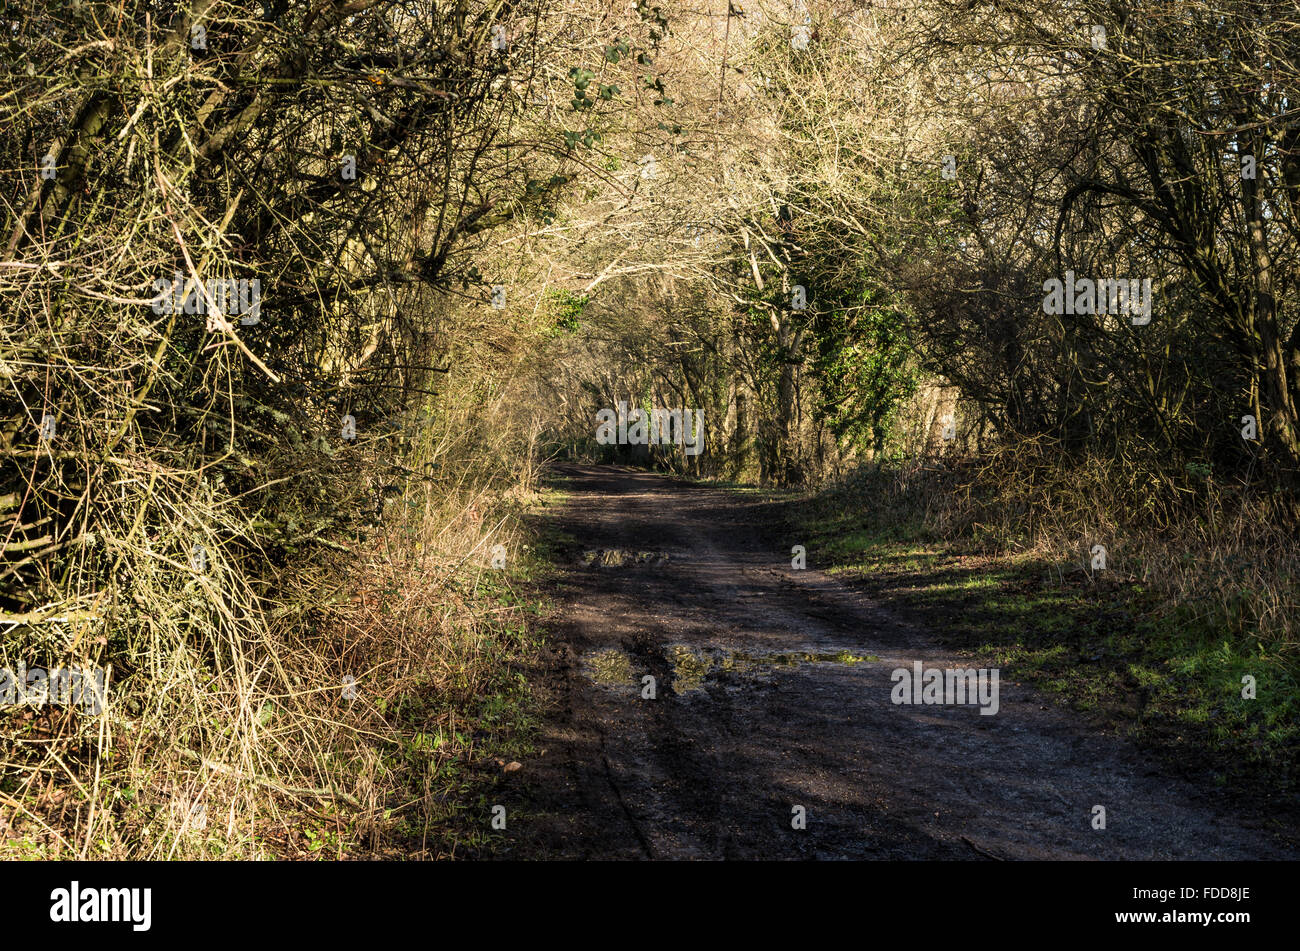 Disused old railway line closed by Beeching, now the Downs Link footpath and bridleway in the Sussex South Downs. - Stock Image